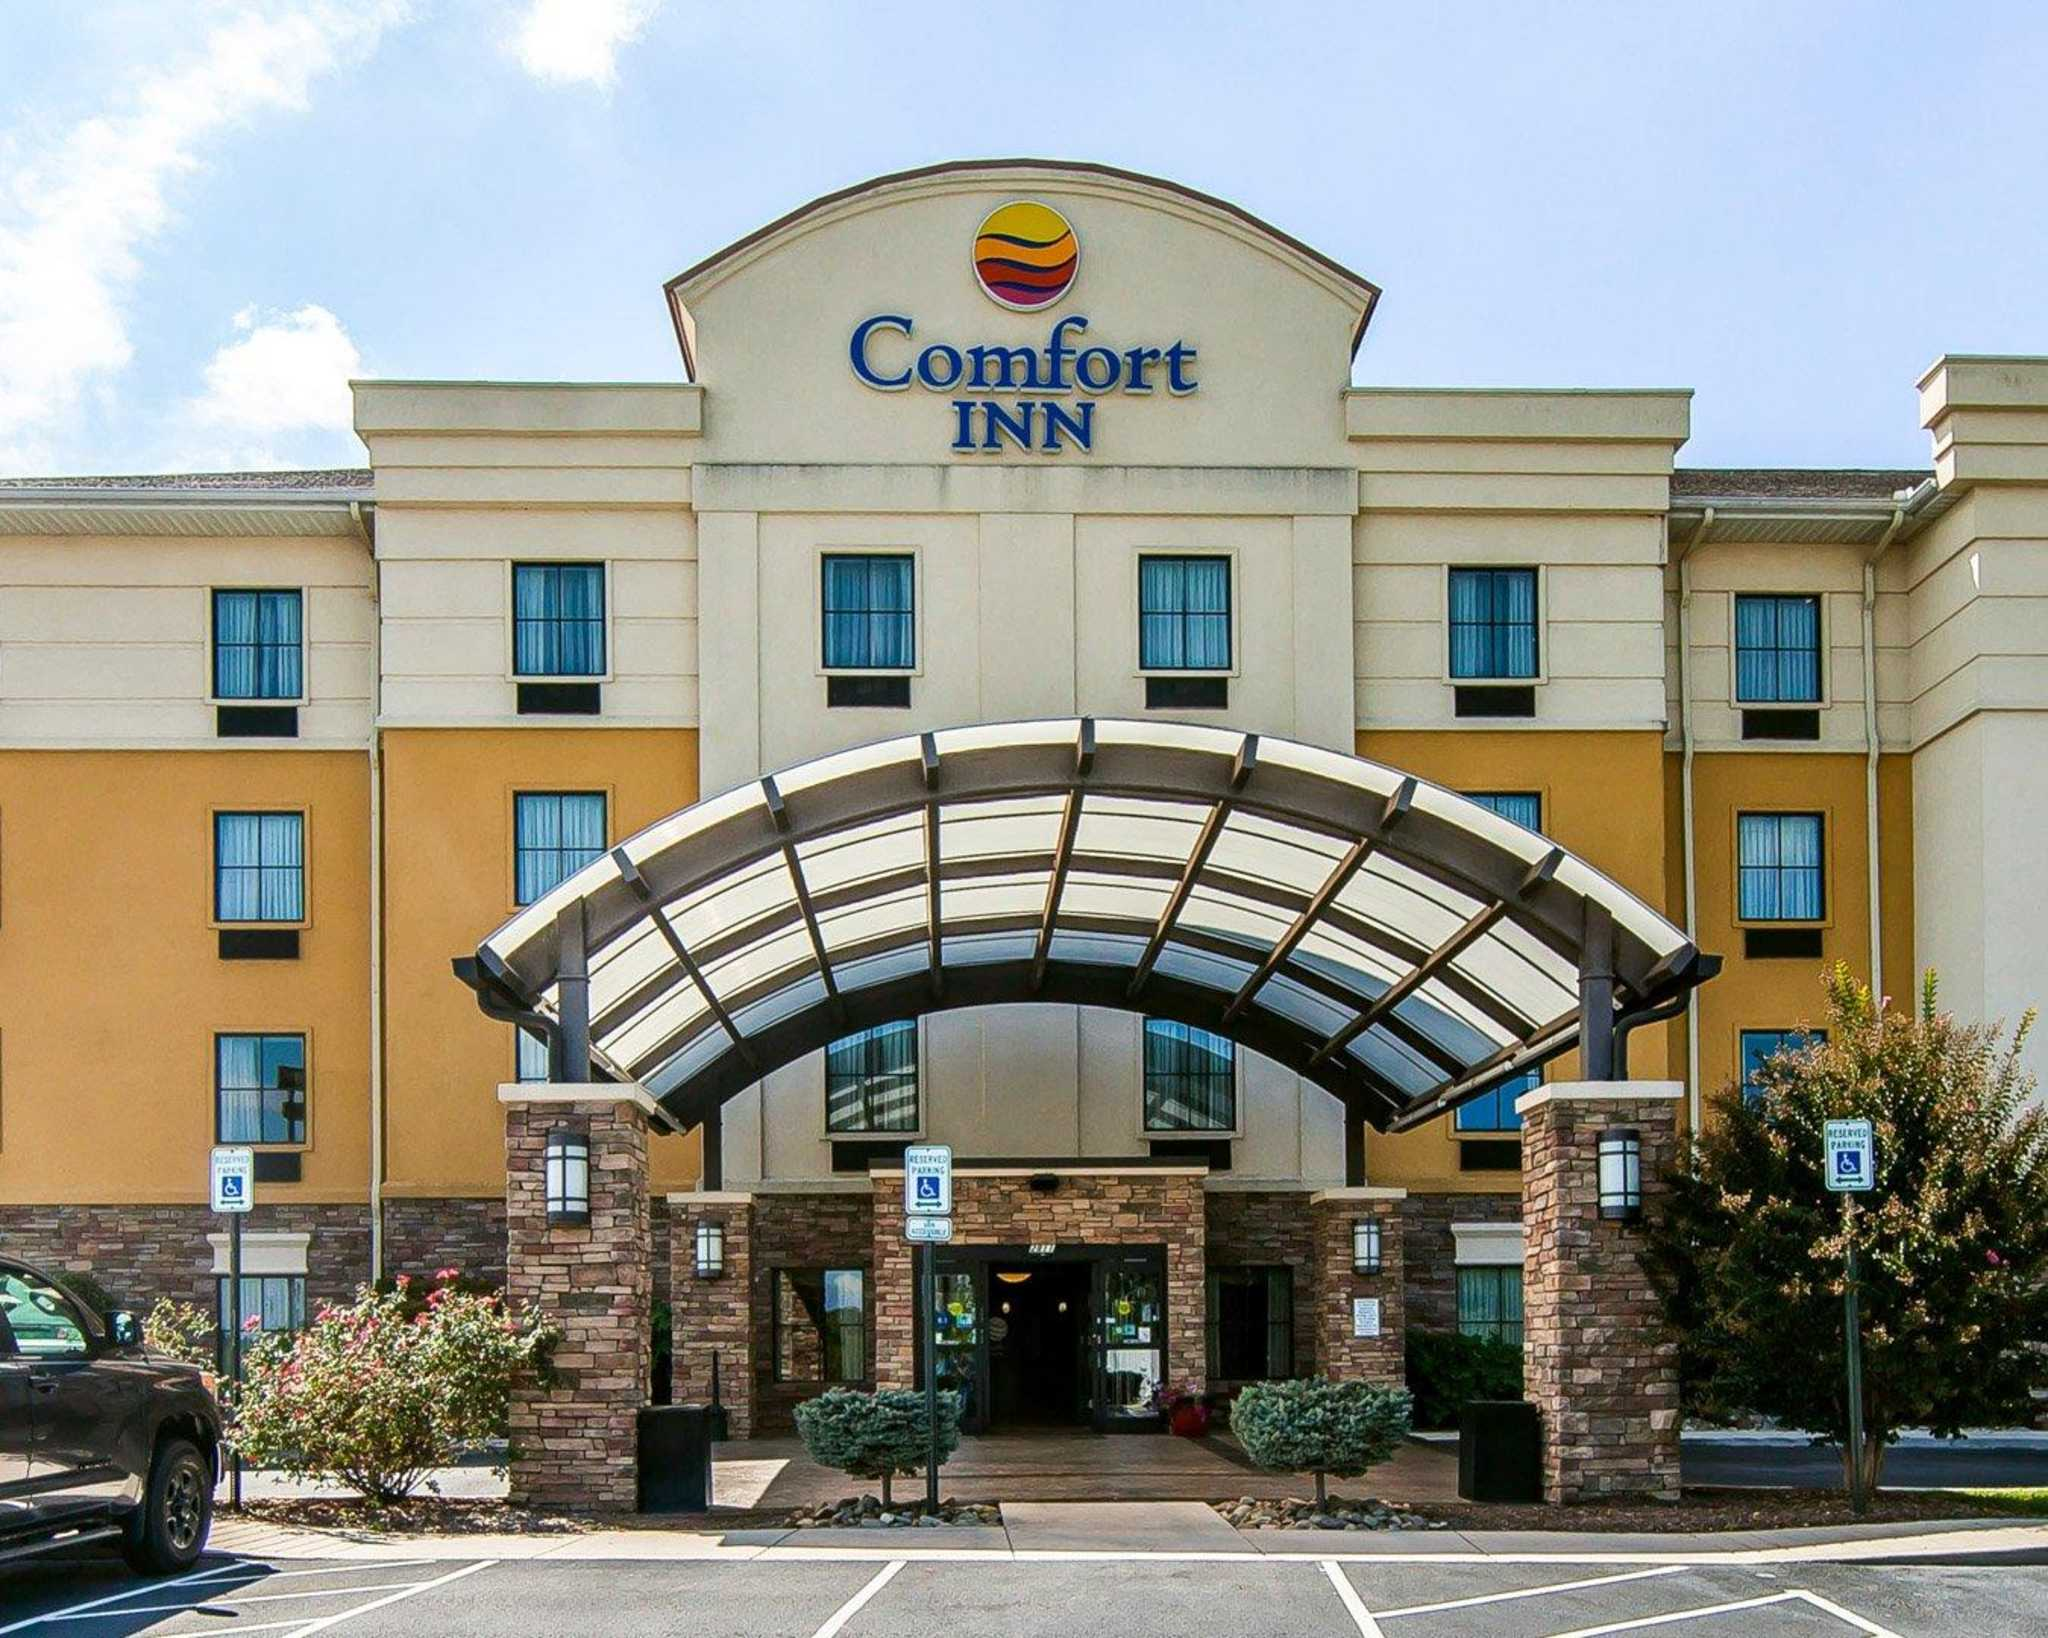 Comfort Inn Coupons Near Me In Athens 8coupons